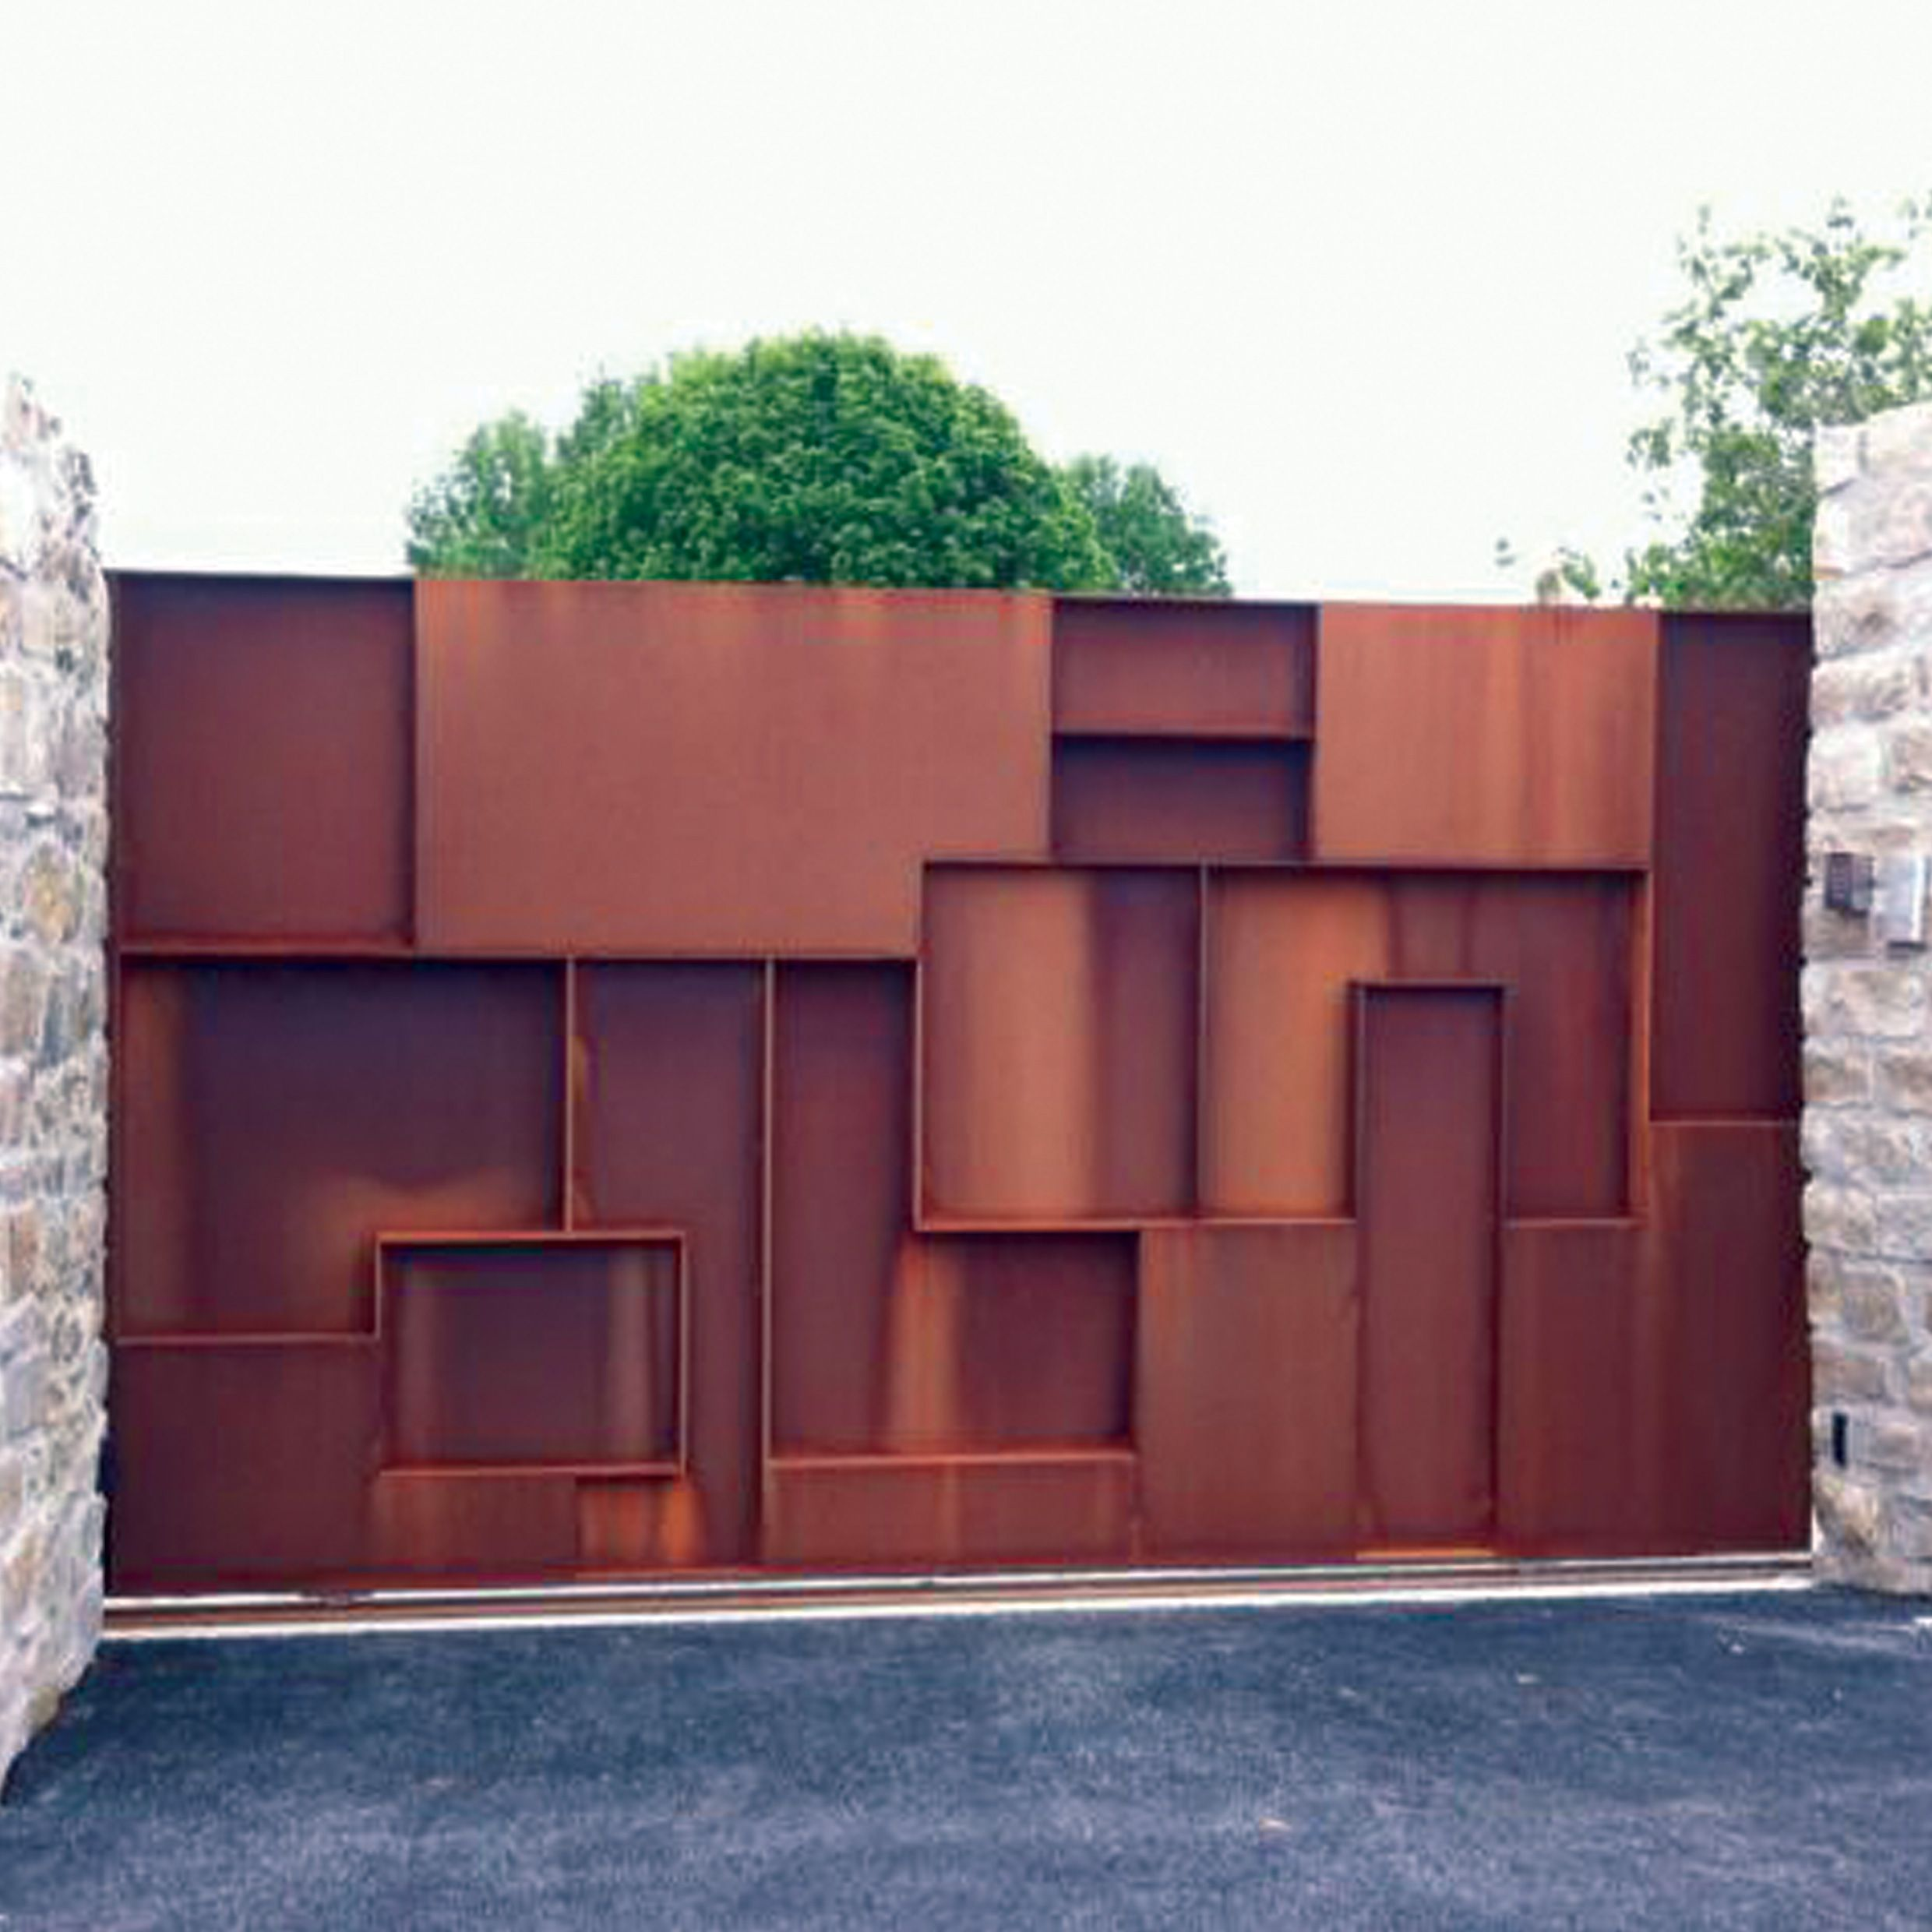 portail acier corten mod le construction ville de pl neuf val andr metafer. Black Bedroom Furniture Sets. Home Design Ideas